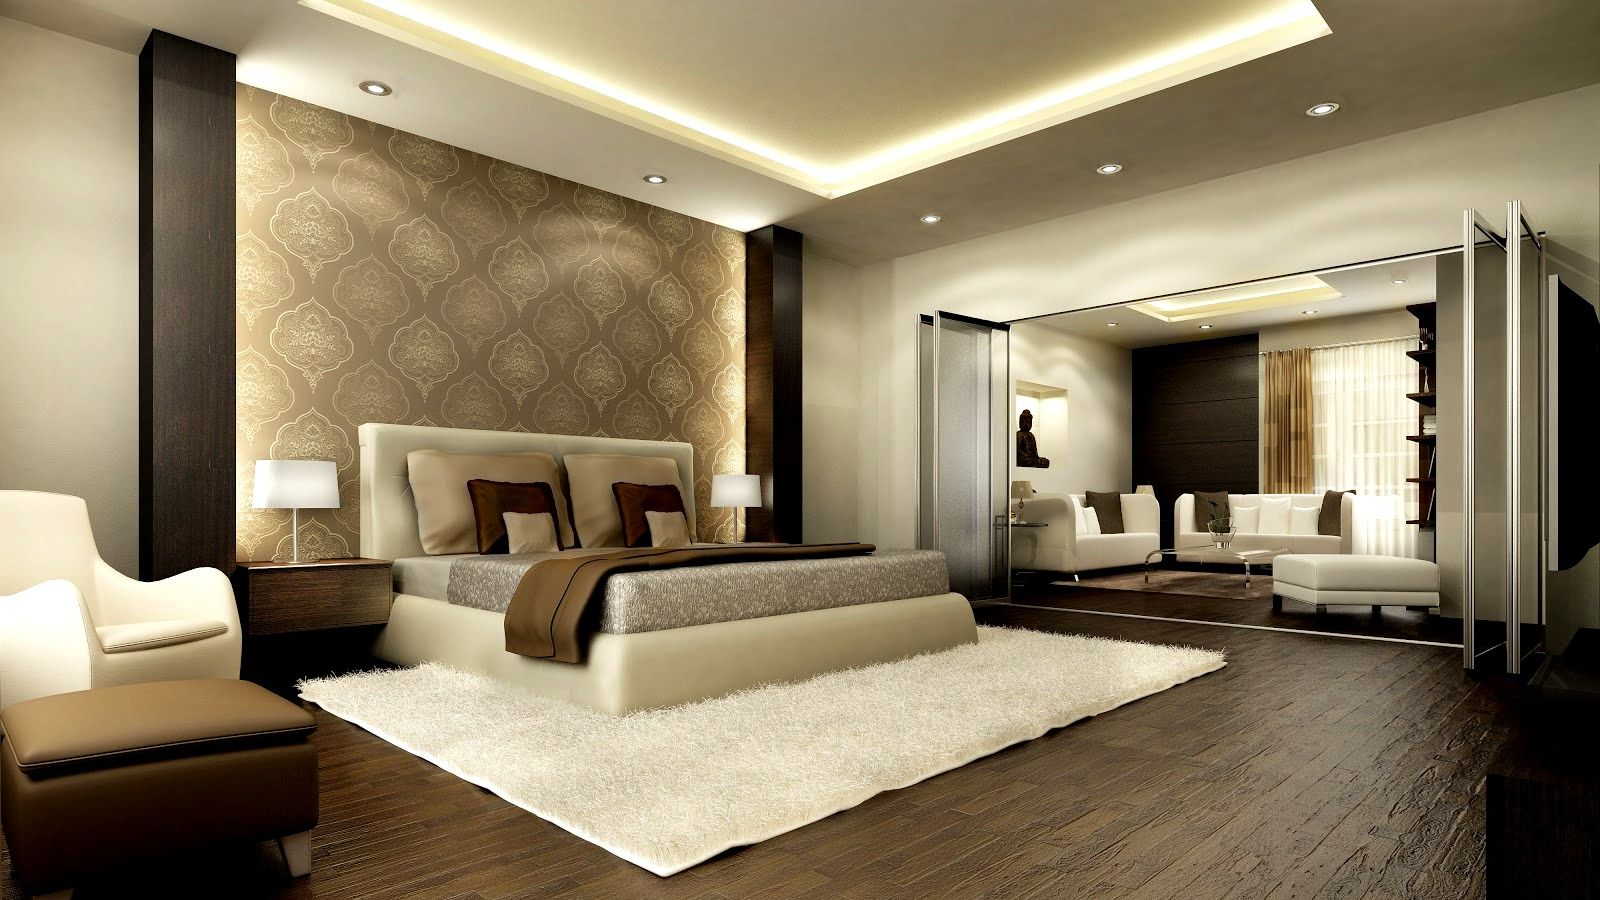 Luxurious master bedroom decorating ideas 2016 - High End Well Known Brands For Expensive Bedroom Furniture Simple Best Interior Design